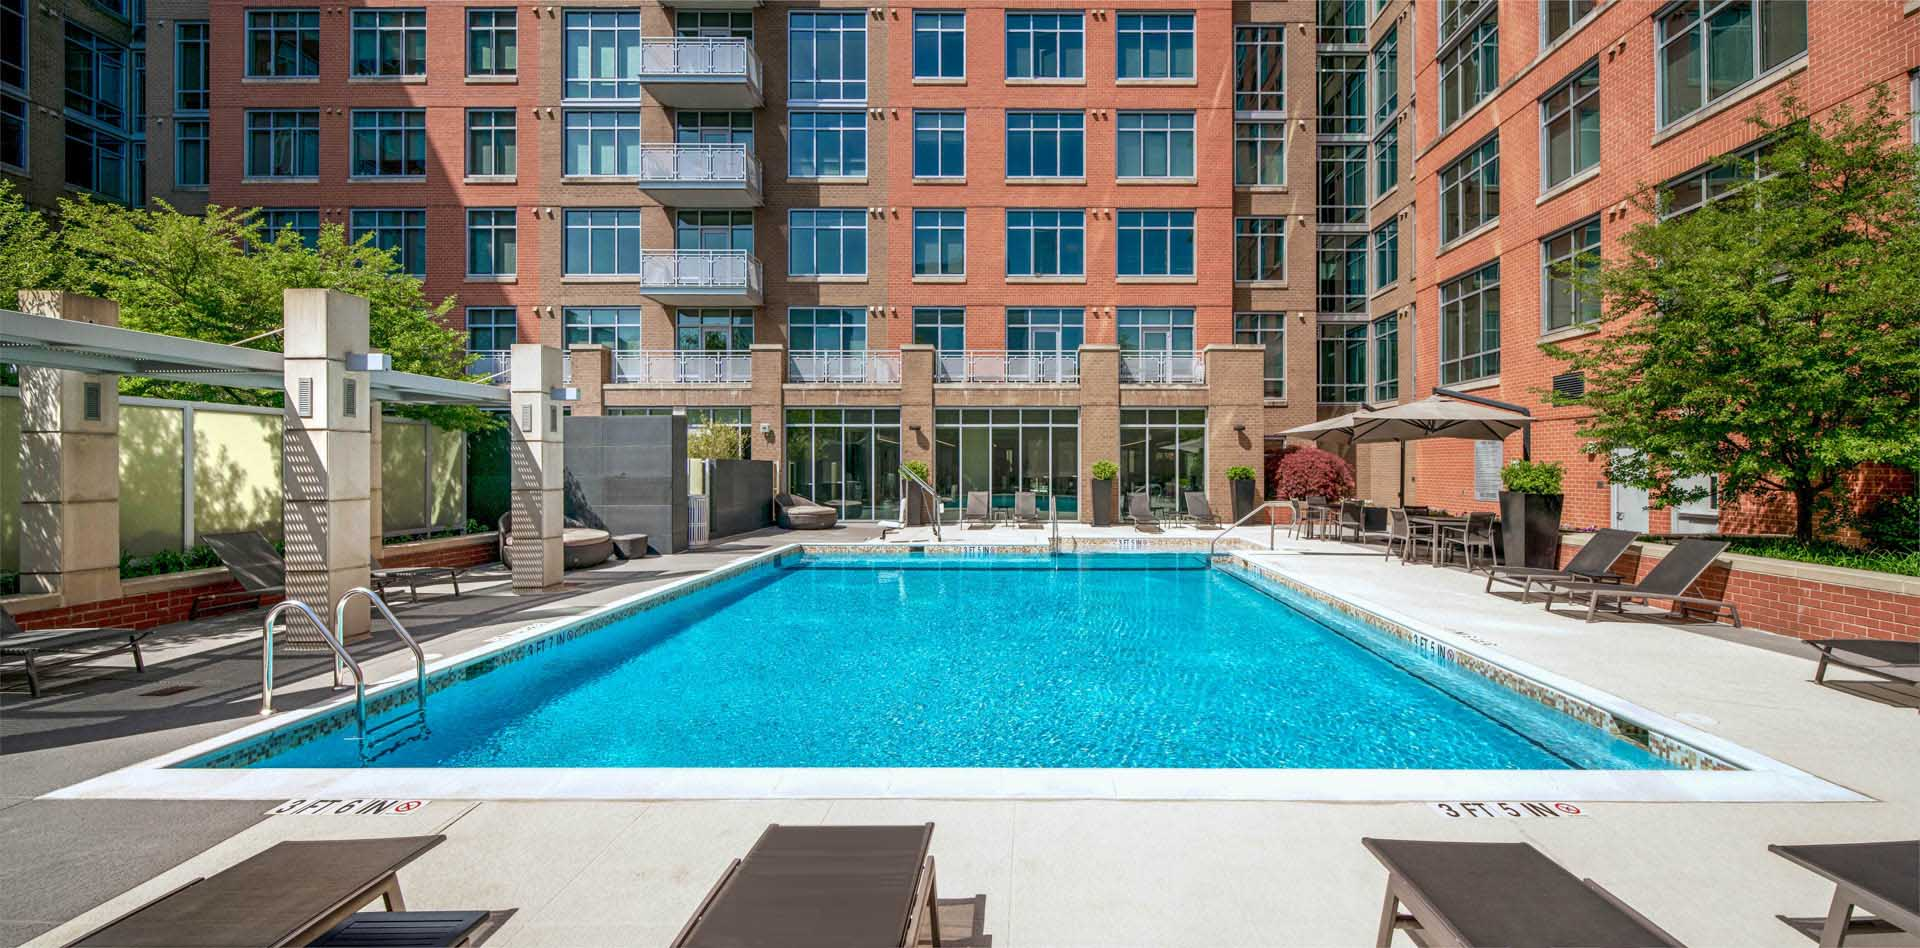 Wide shot of bright pool with lounge chairs and shaded trellis area on the left